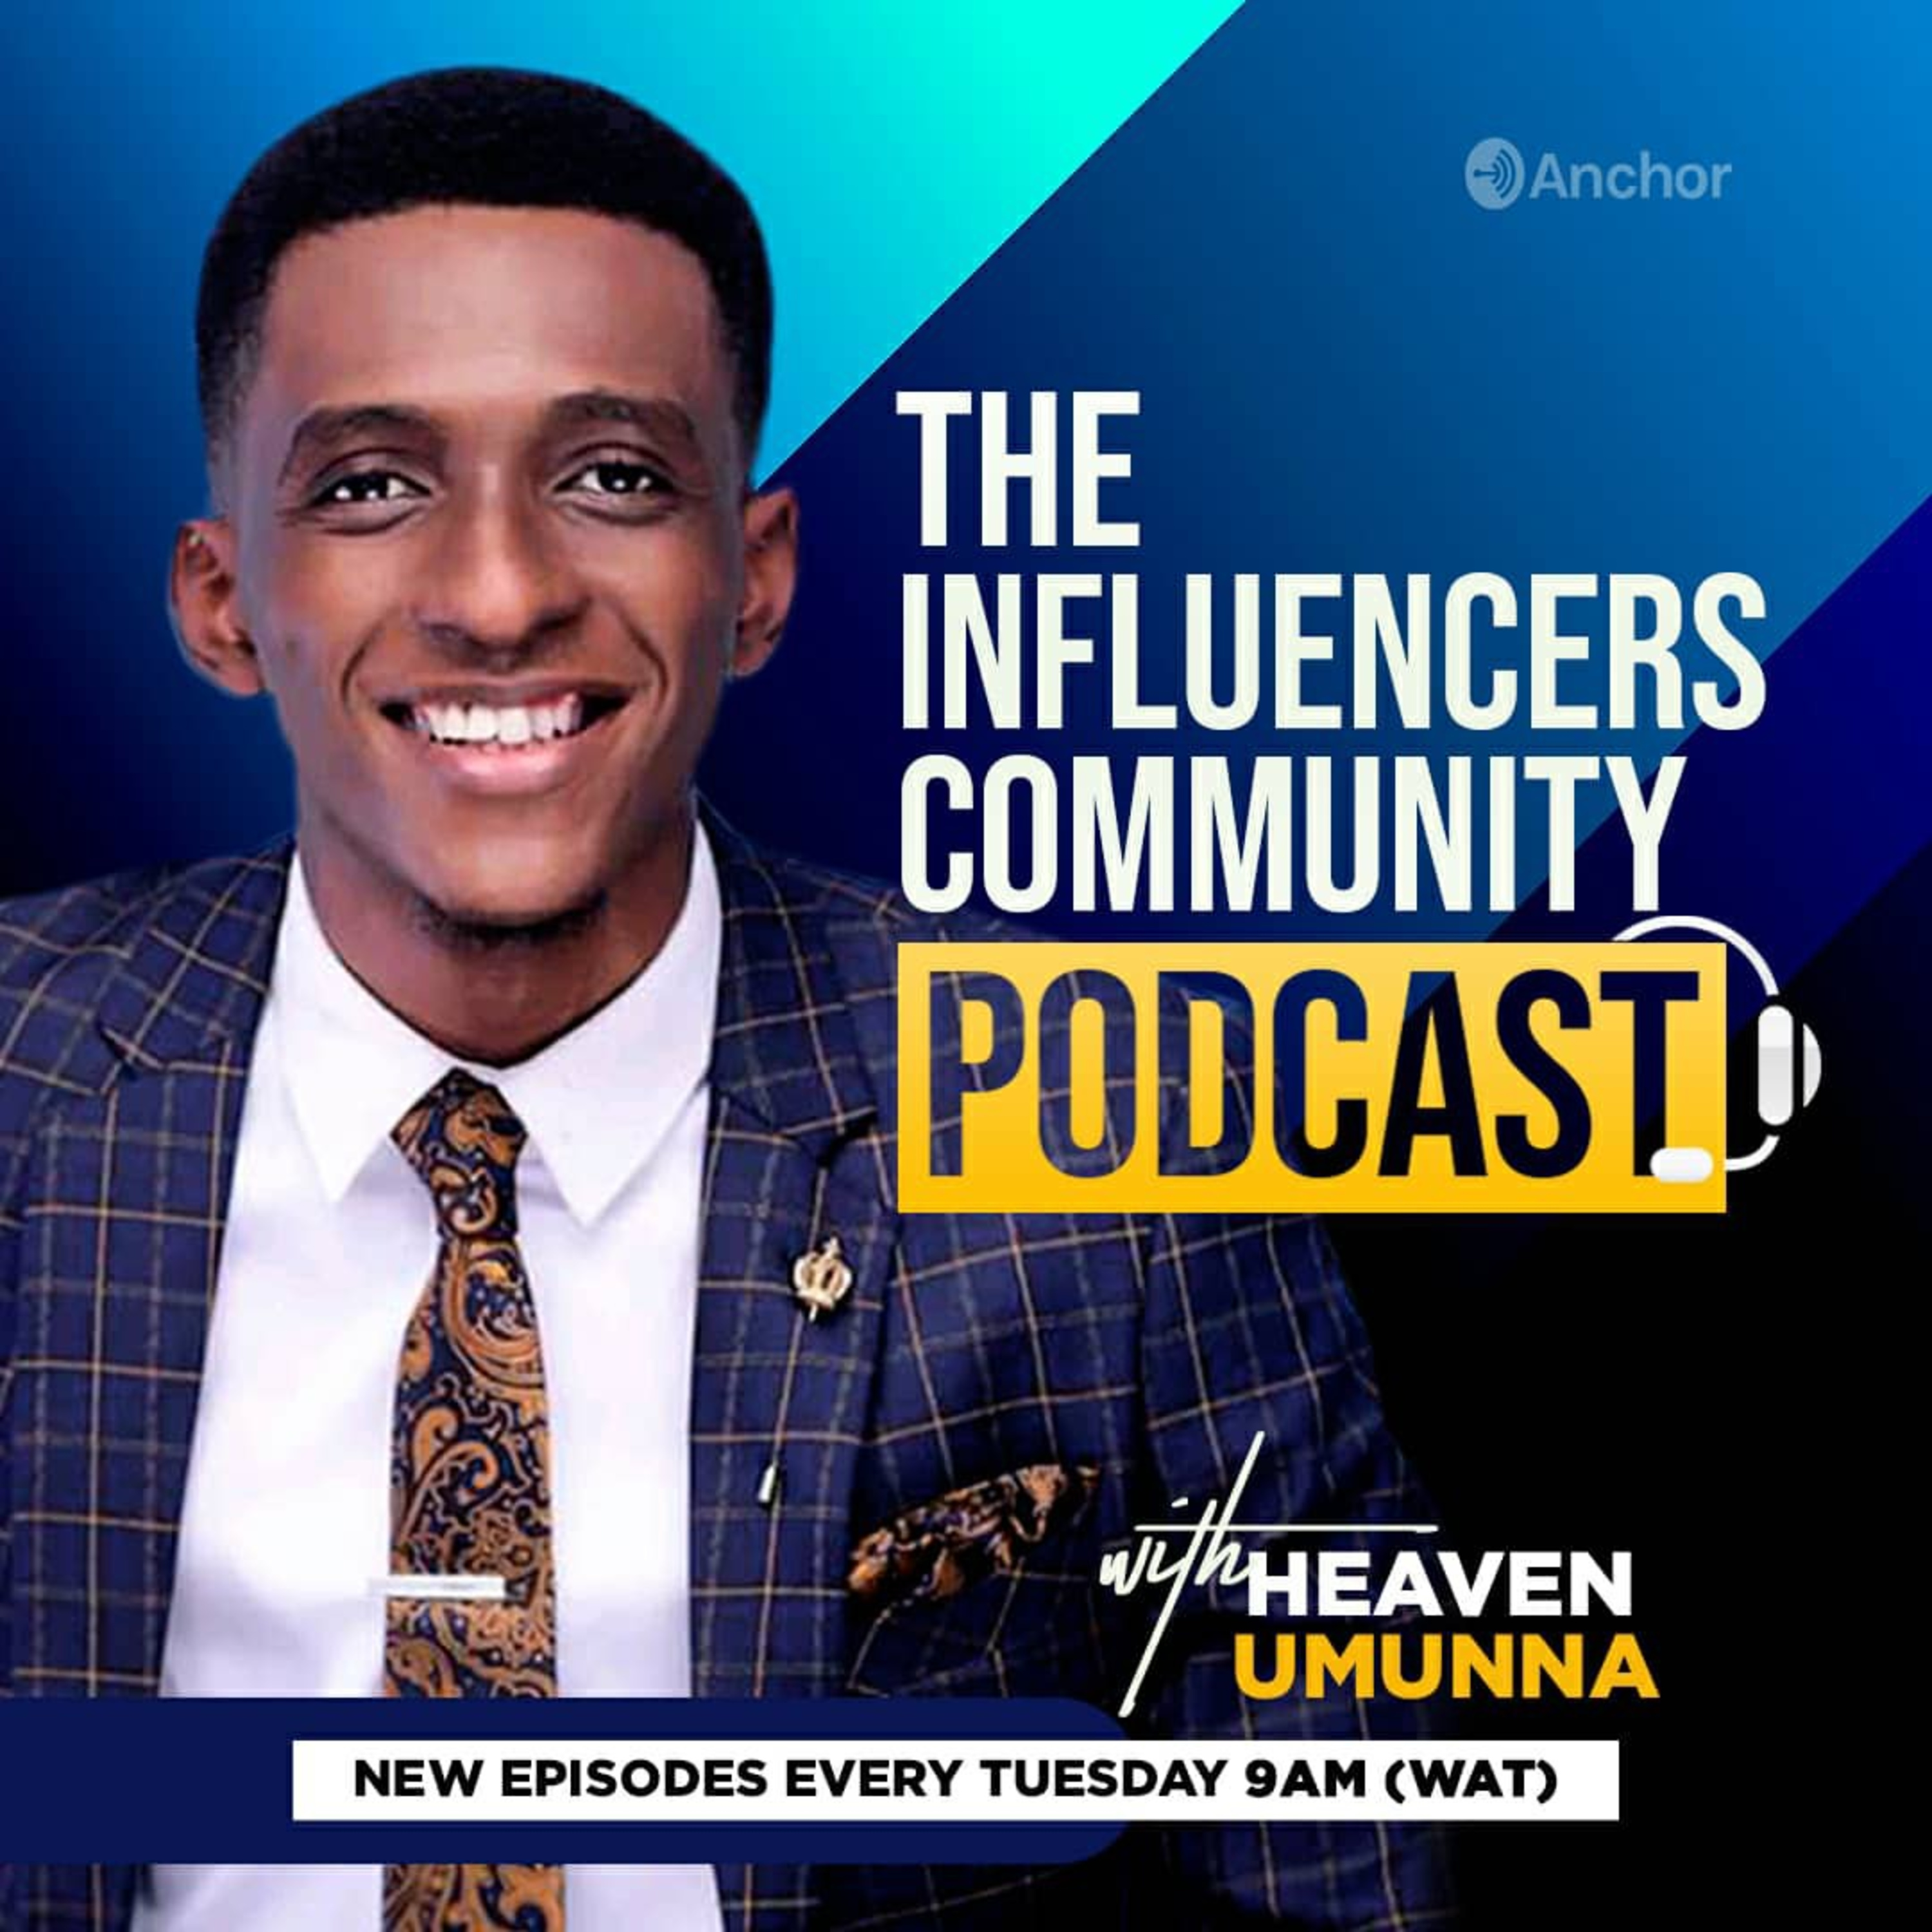 The Influencers Community Podcast With Heaven UMUNNA